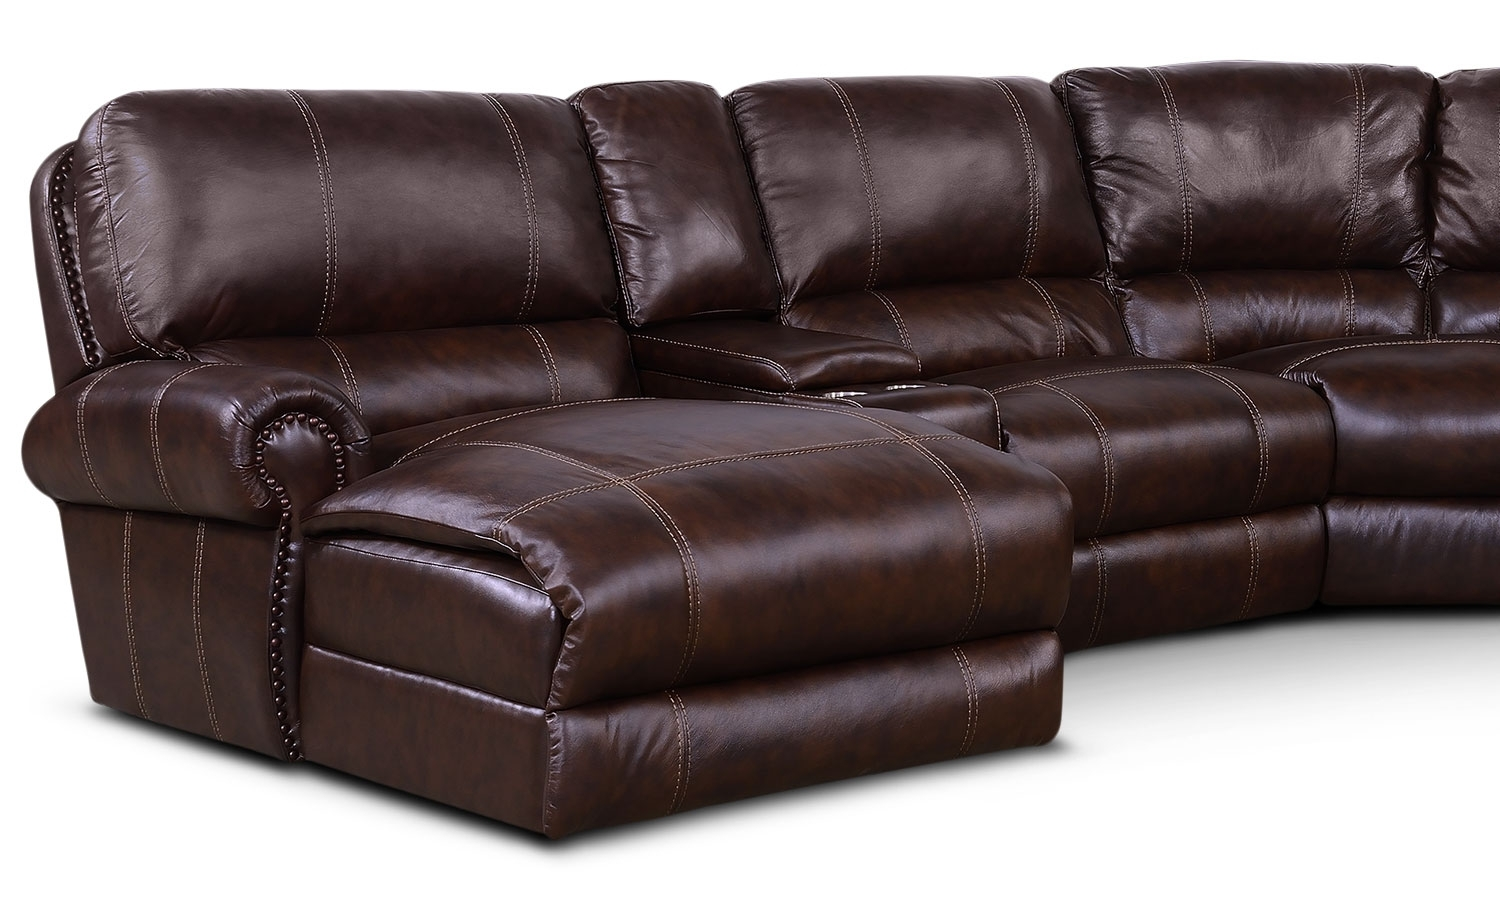 Dartmouth 6 Piece Power Reclining Sectional W/ Left Facing Chaise With Regard To Norfolk Chocolate 6 Piece Sectionals With Raf Chaise (Image 7 of 25)